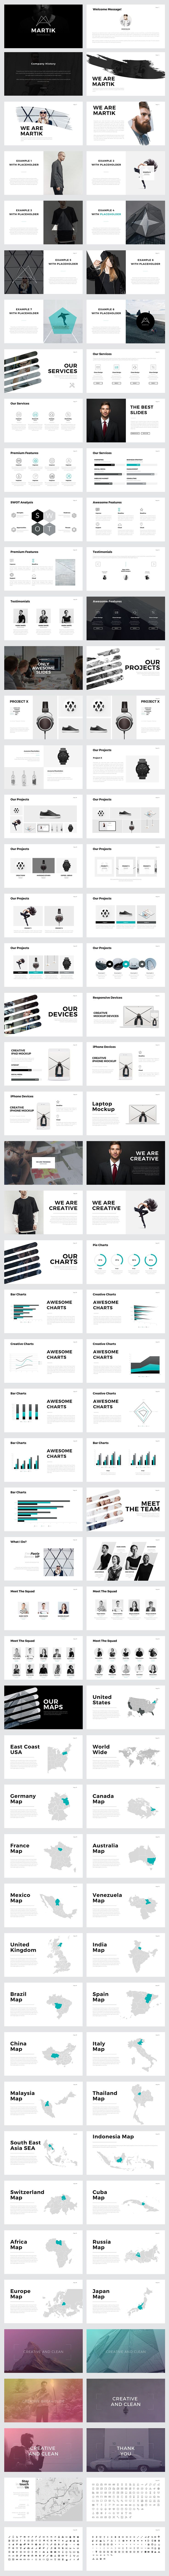 Martik Keynote Presentation Template by Slidedizer on Creative Market